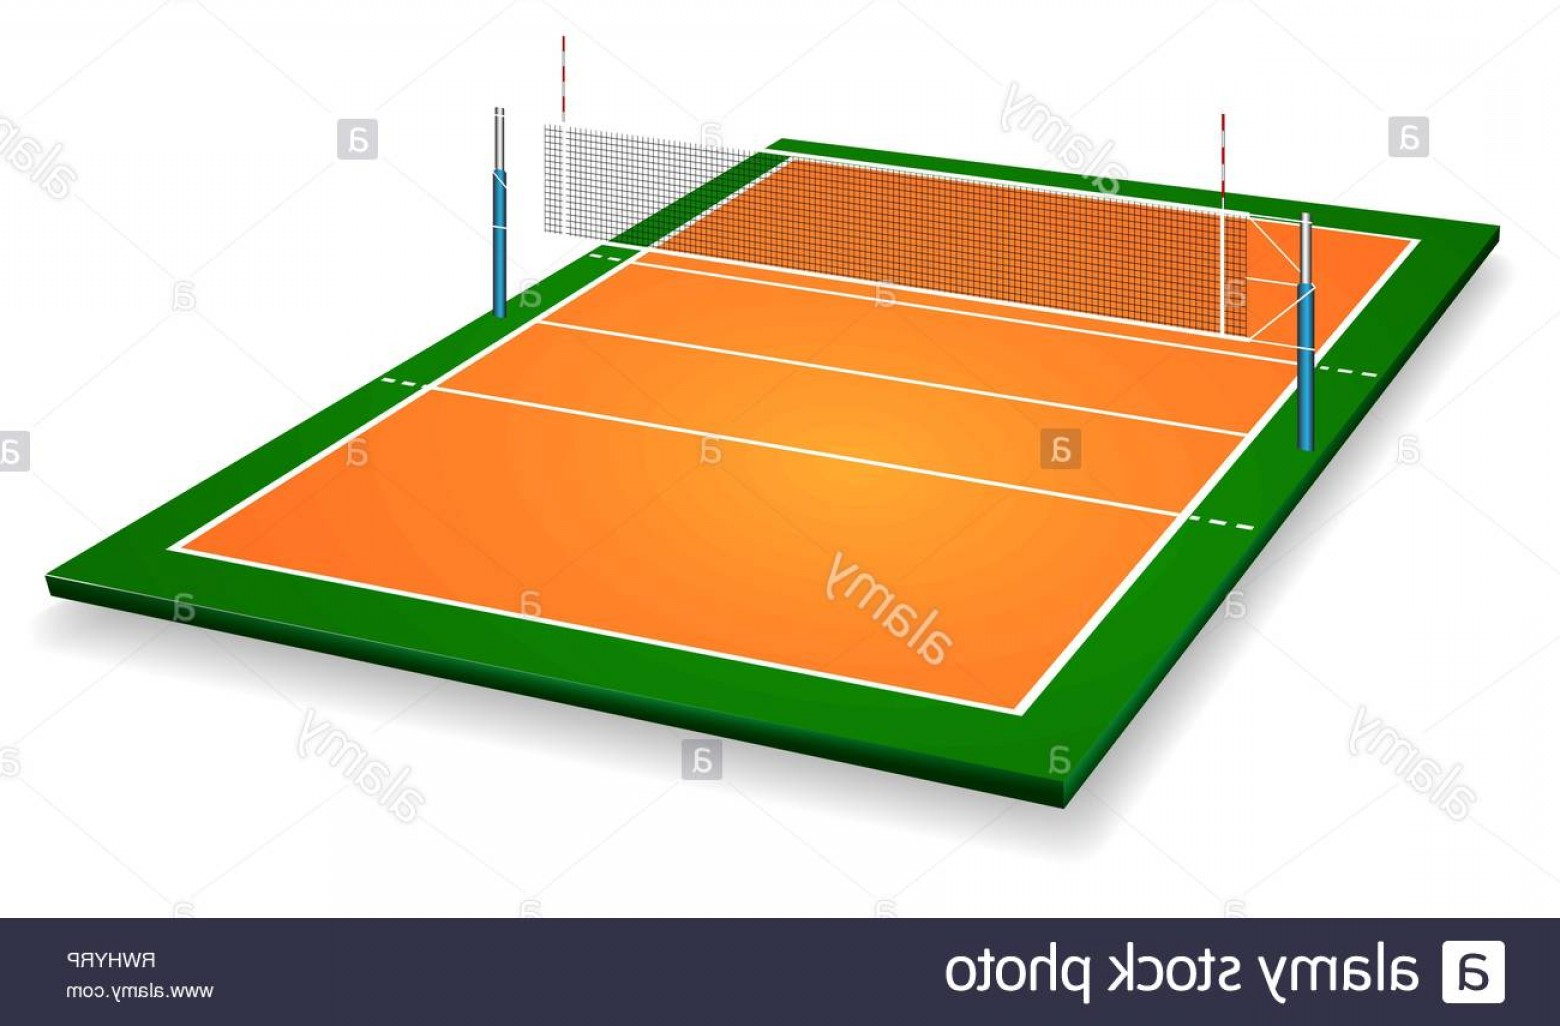 Perspective Vector: Perspective Vector Illustration Of Vollyball Field Court With Net Vector Eps Room For Copy Image